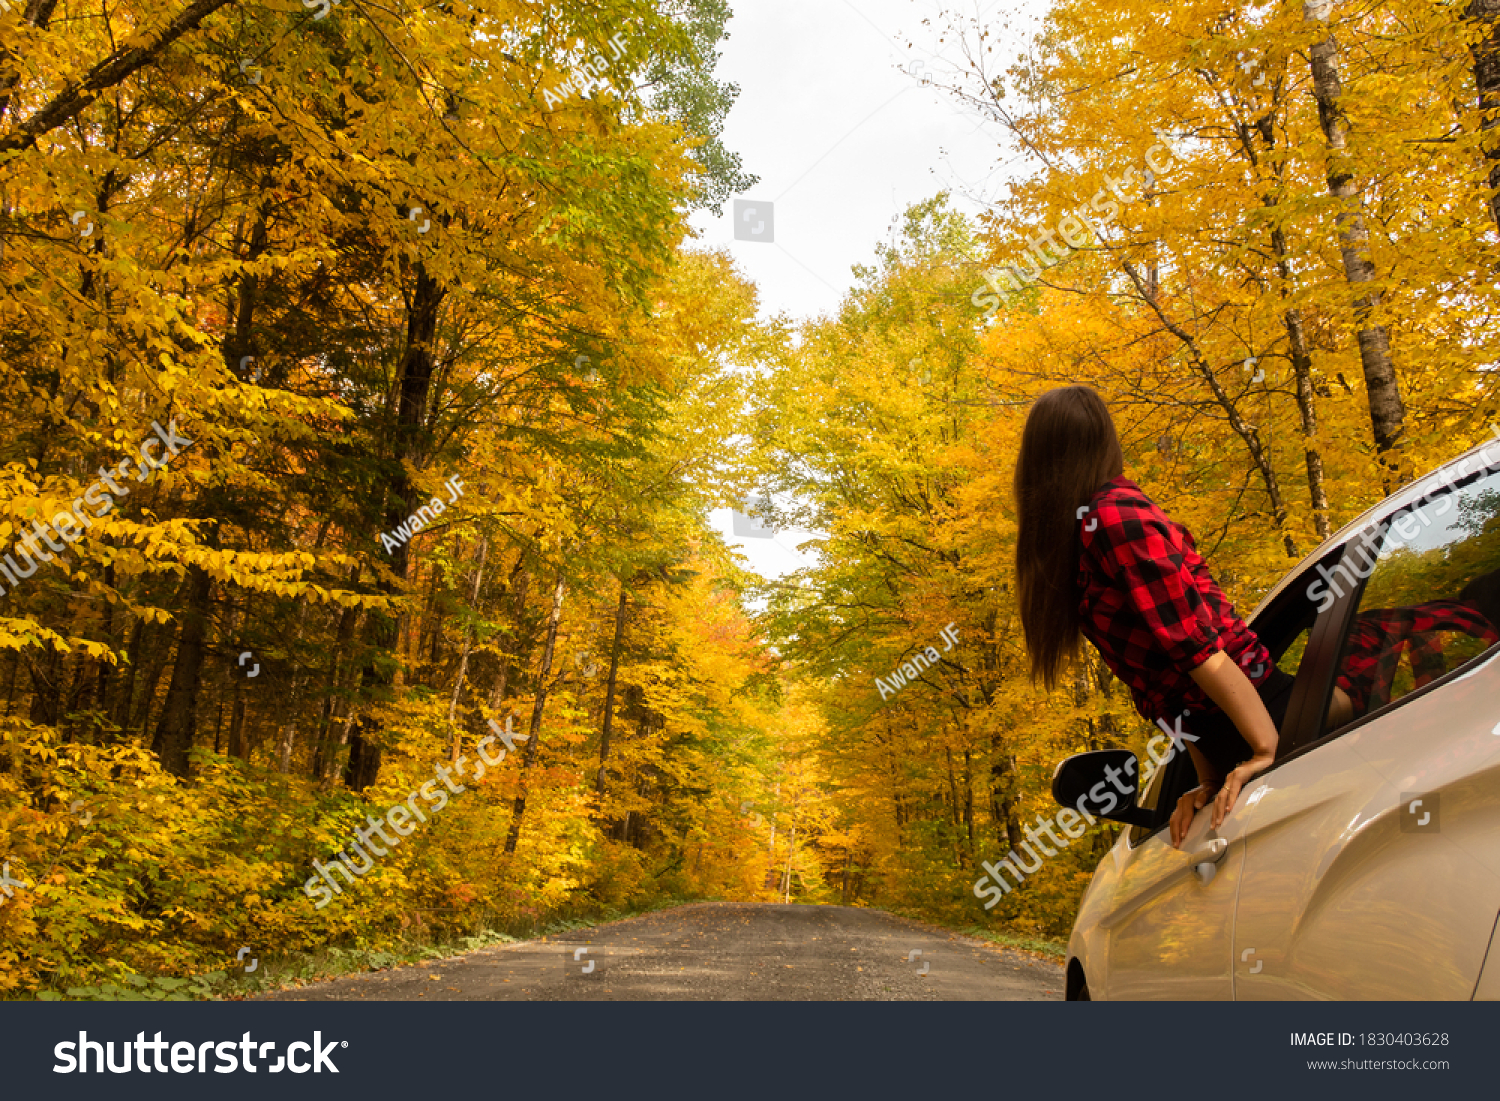 stock-photo-young-woman-hanging-out-of-a